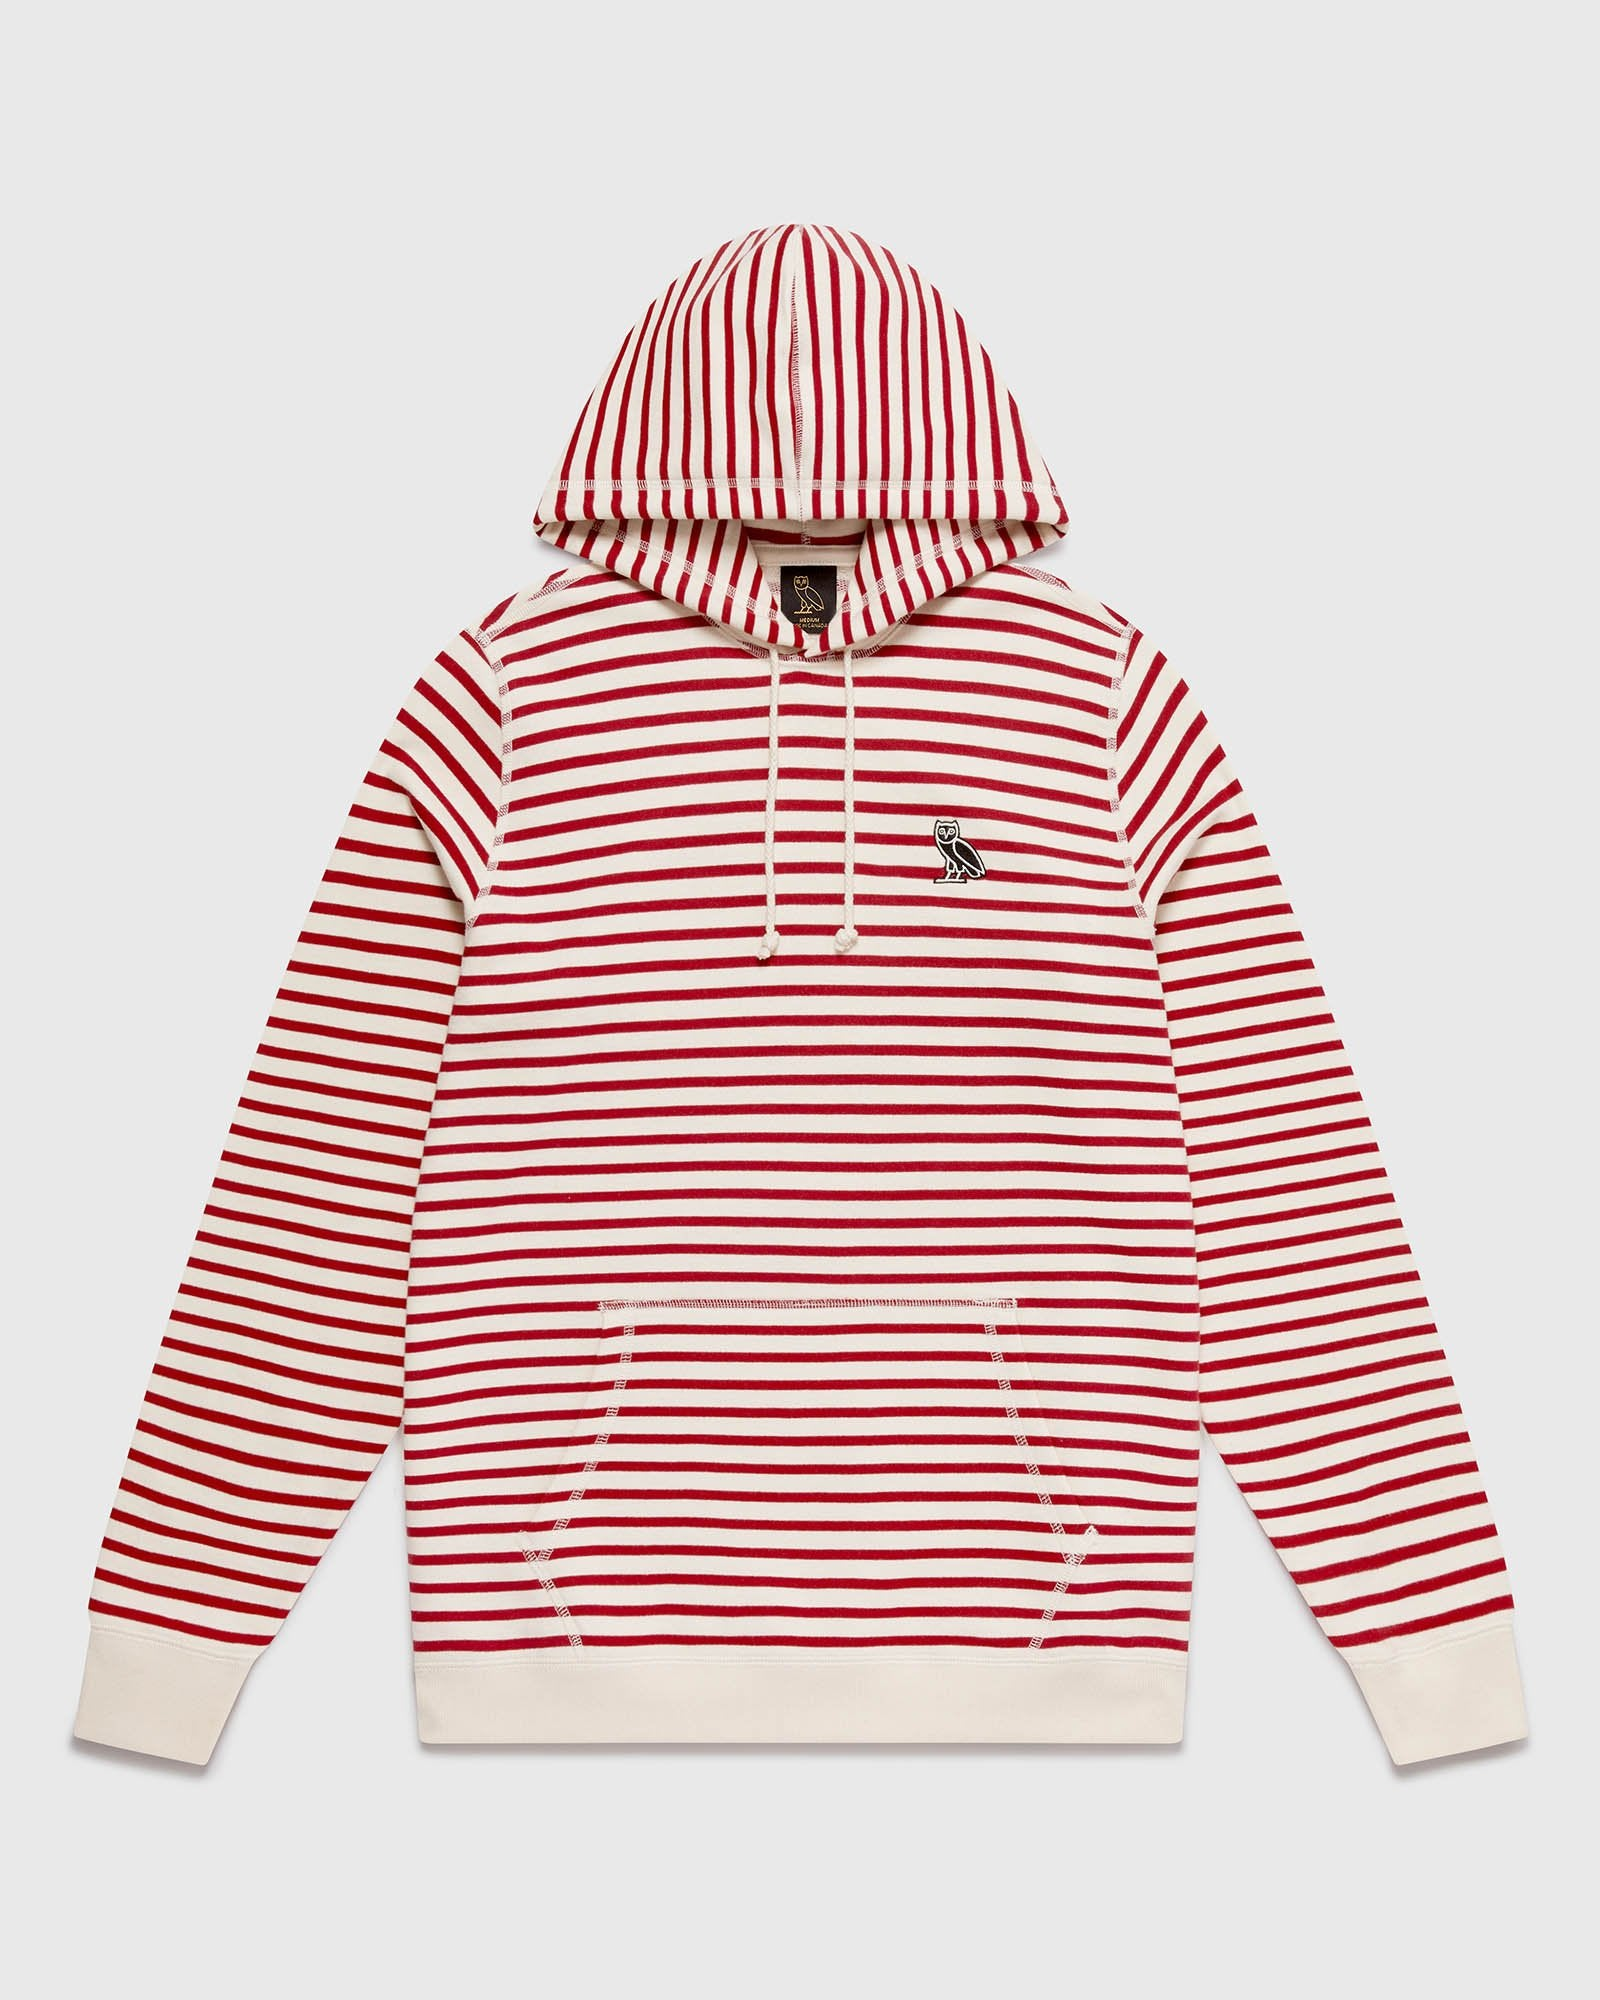 NAUTICAL STRIPE HOODIE - RED/CREAM IMAGE #1